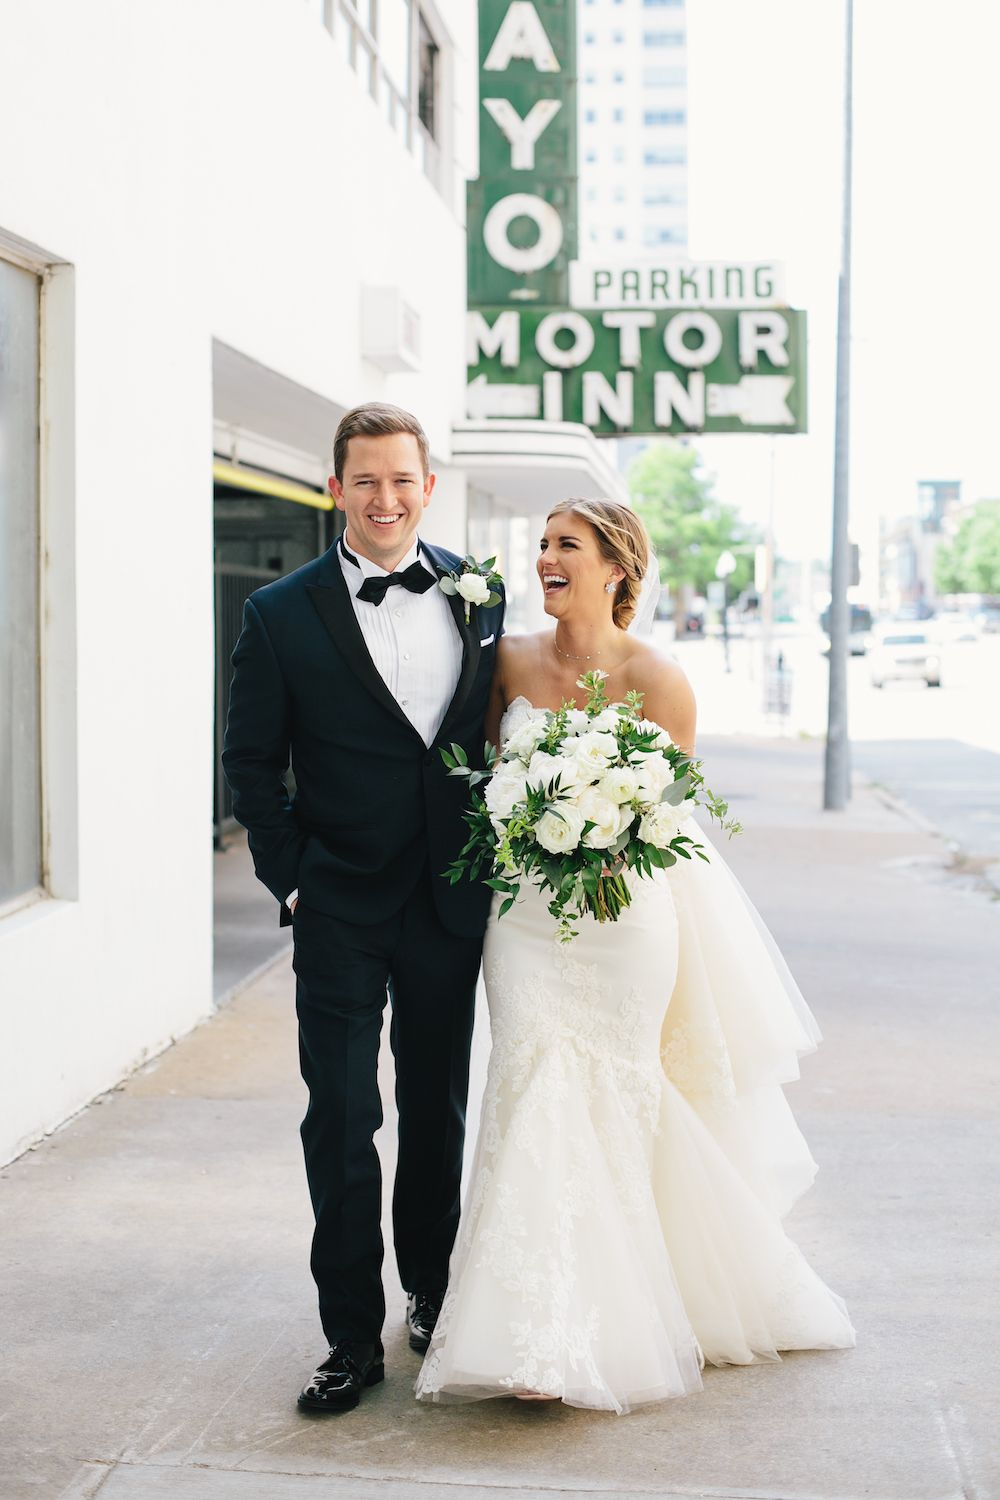 Aaron Snow Photography Oklahoma Wedding Photographer Tulsa Mayo Hotel Motor Inn Sign Bride Groom bouquet Wackenhuth